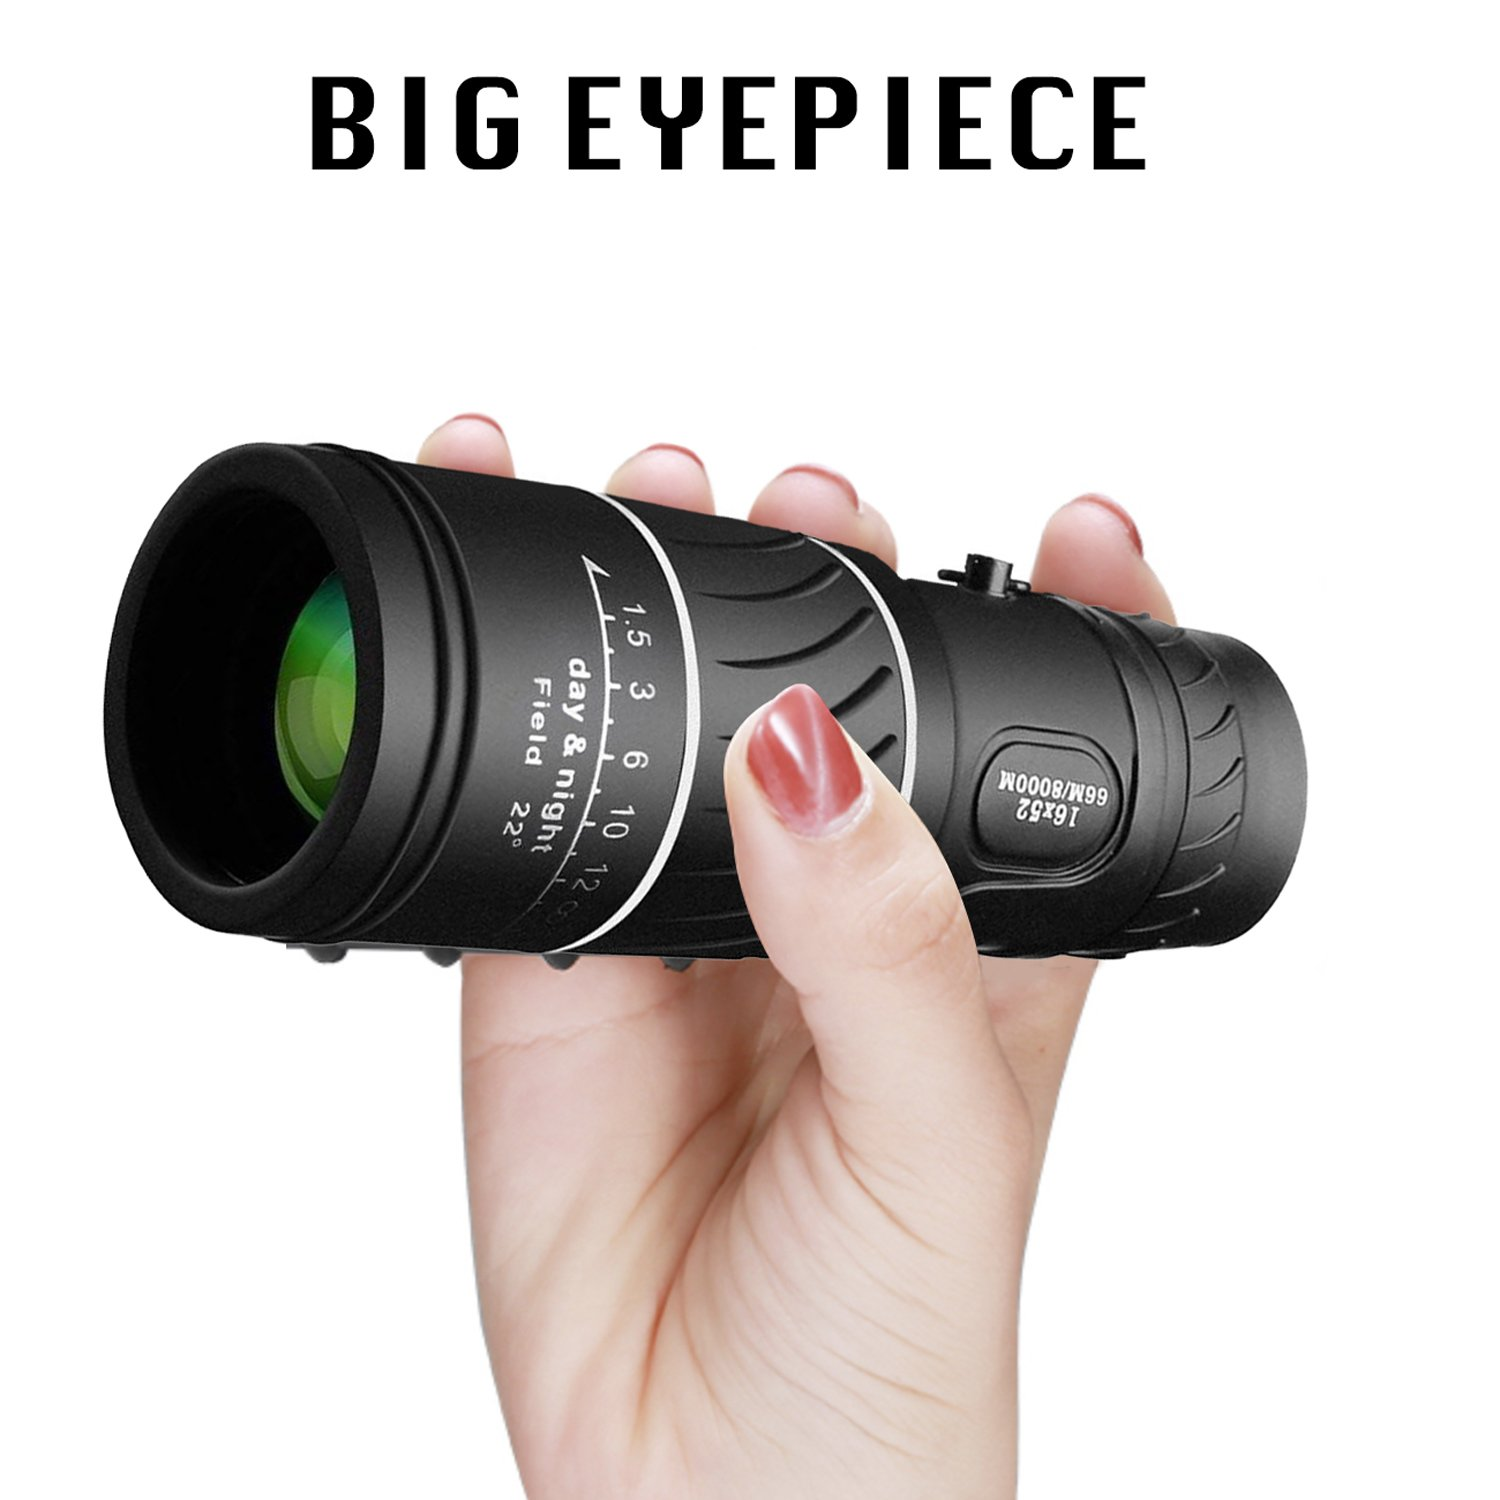 VOCH Monocular Telescope, 10X40 Dual Focus, Prism Film Optics,Waterproof, Monocular Scope for Birdwatching/Hunting/Camping/Hiking/Golf/Concert/Surveillance